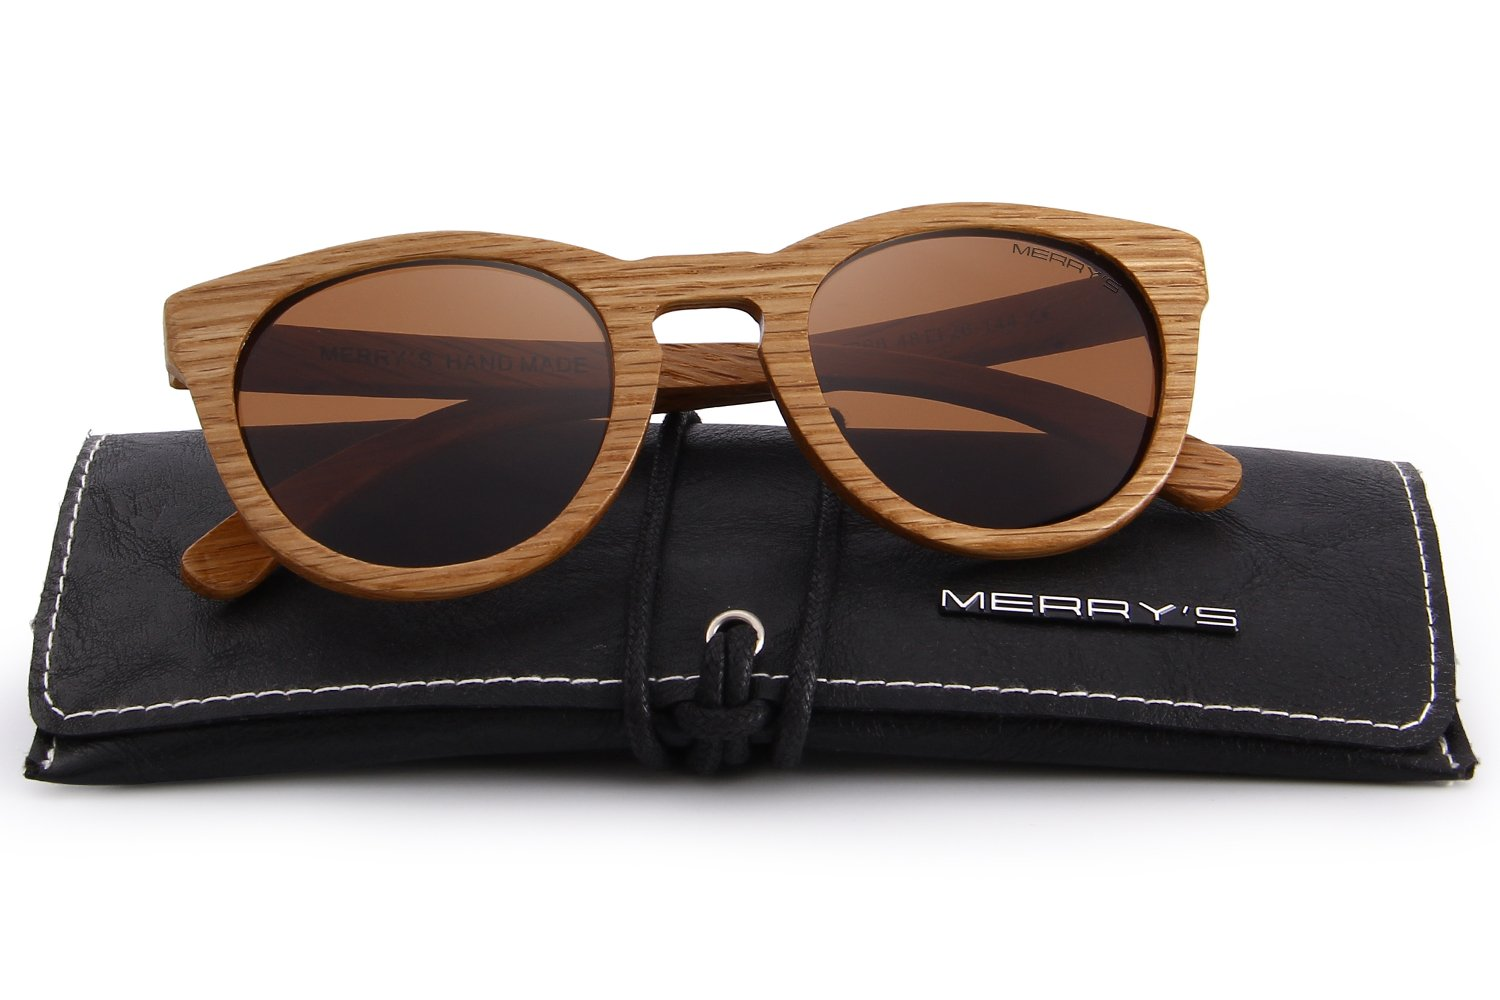 MERRY'S Polarized Full Frame Wooden Coated Floating Sunglasses Mens/Womens vintage Eyewear S5268 (Brown, 48)